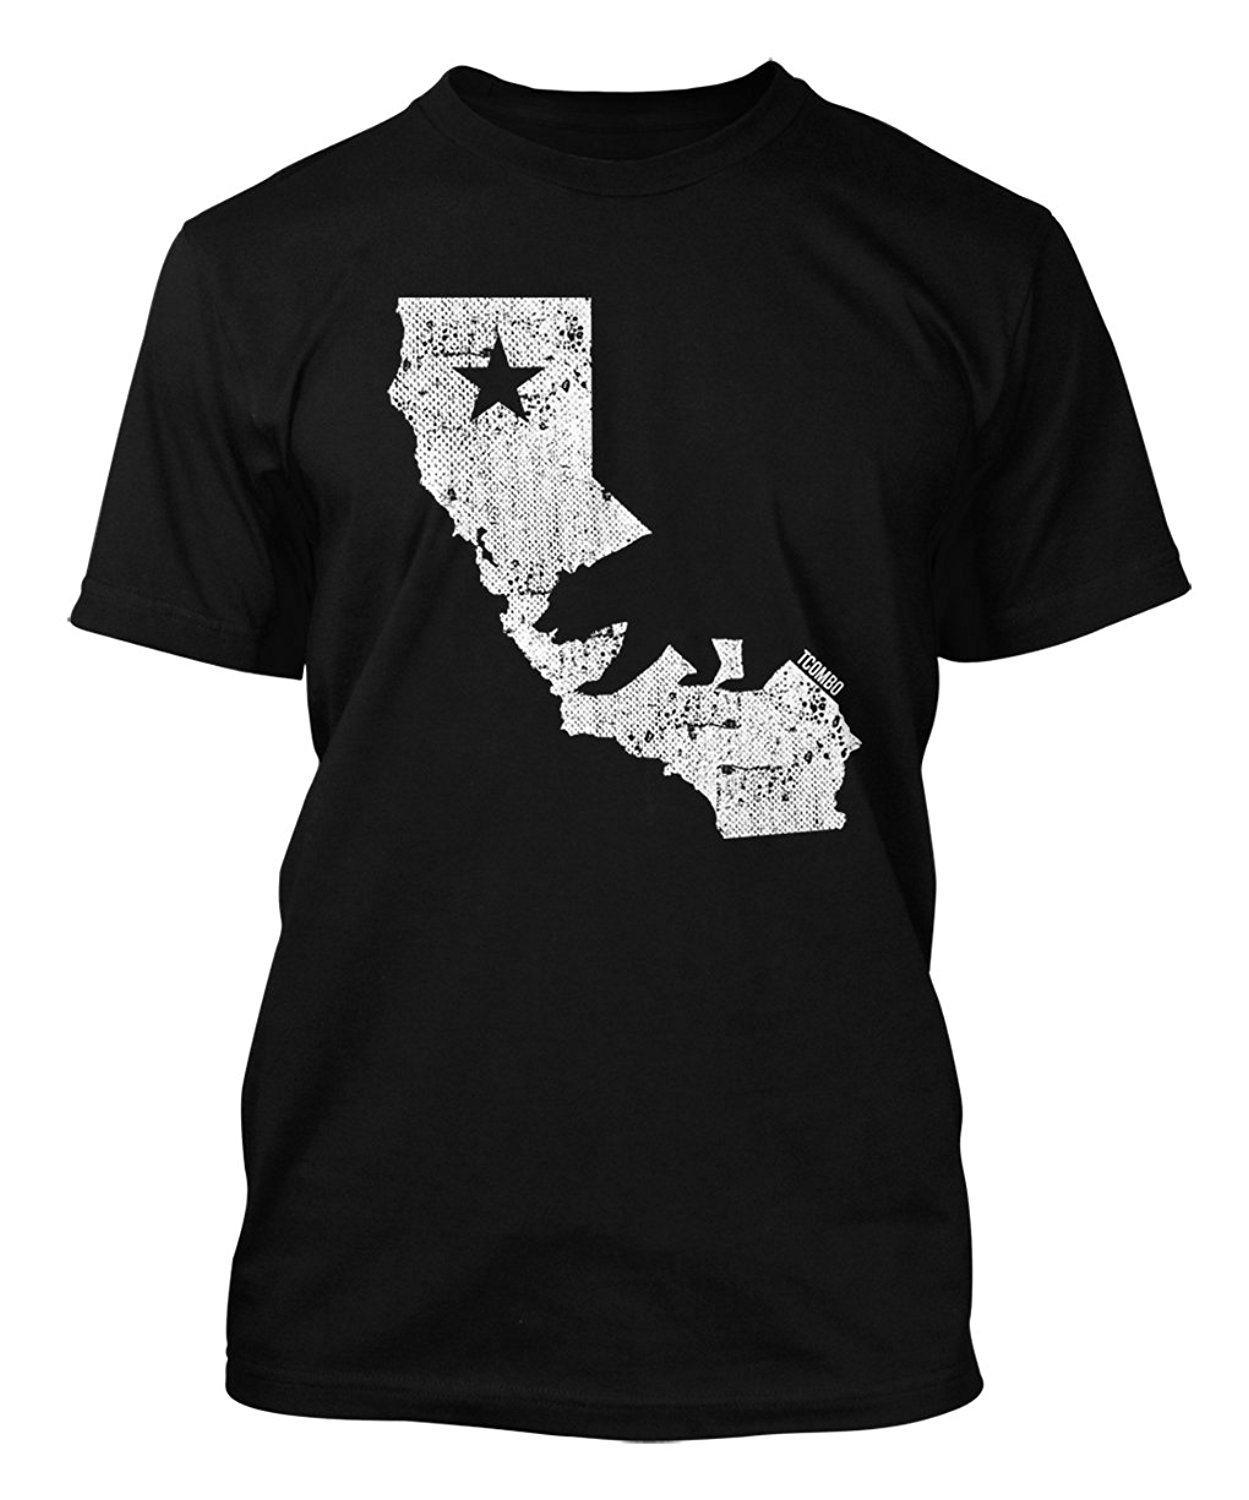 Tee Shirt Mens 2018 New Tee Shirts Printing California State Map